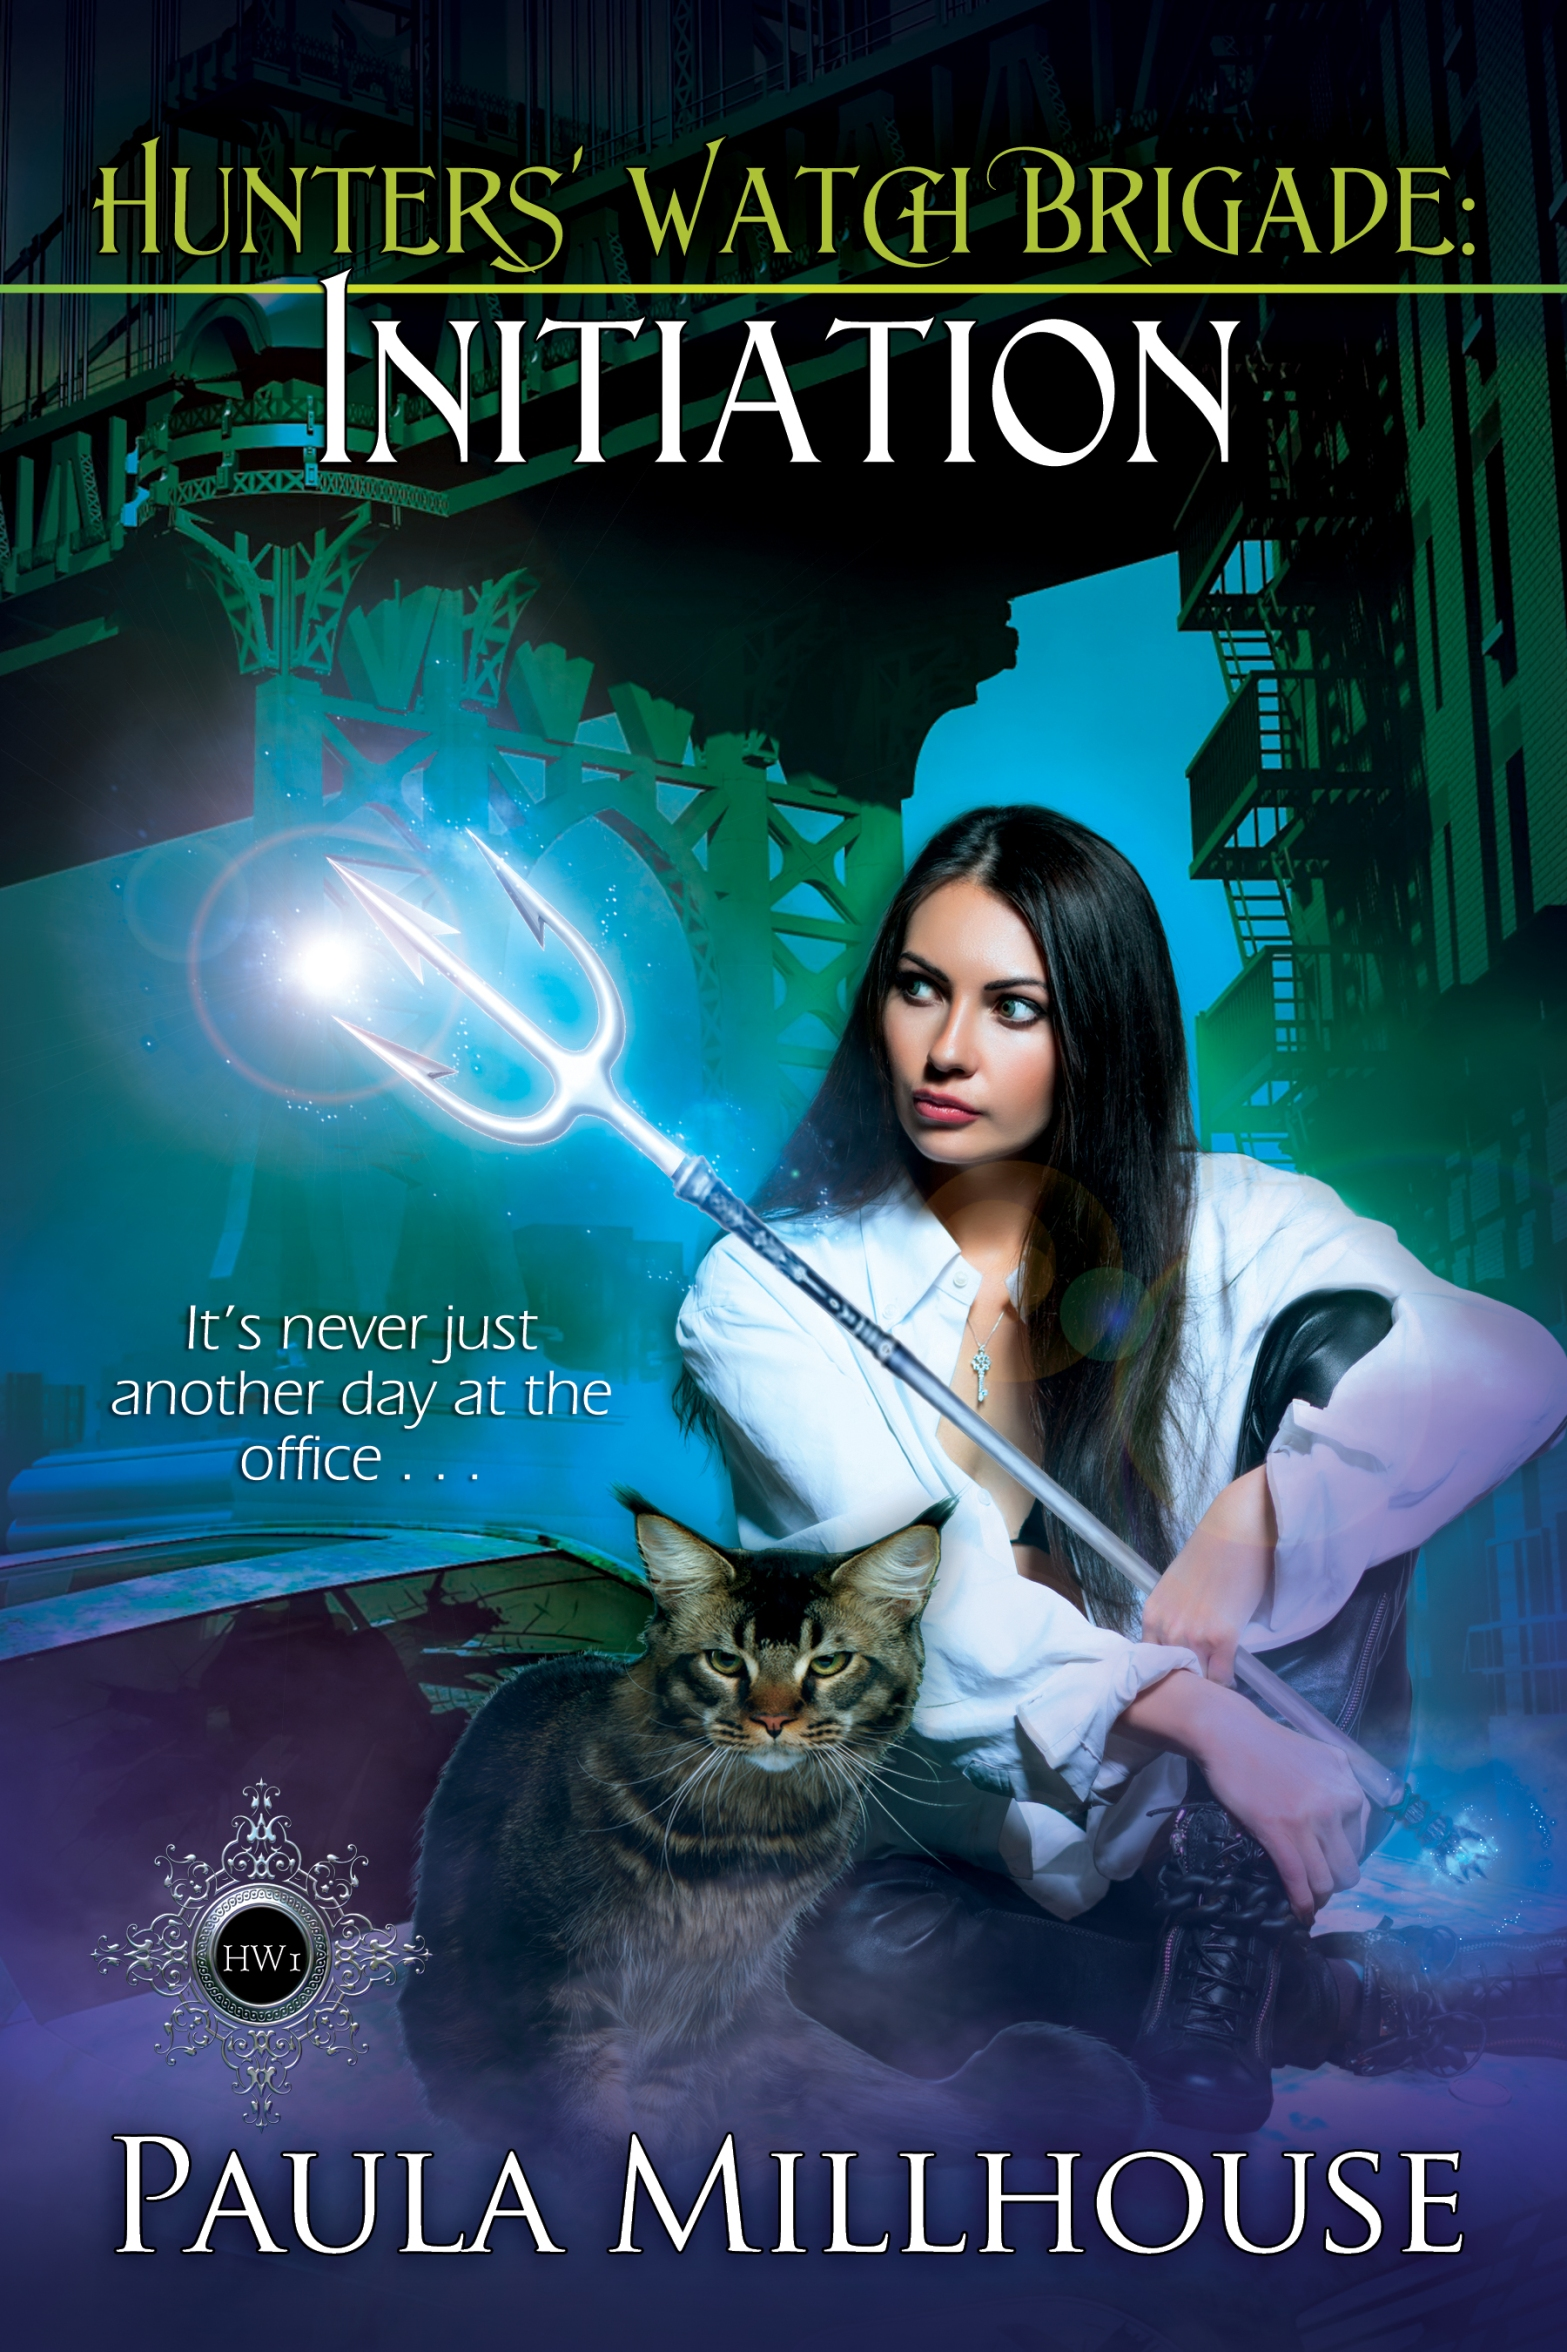 Paula Millhouse, Hunters' Watch Brigade, Initiation, Paranormal Romance, Urban Fantasy, Demigod, Witches, Wizards, Vampires, Shape shifters, Romance, Fiction